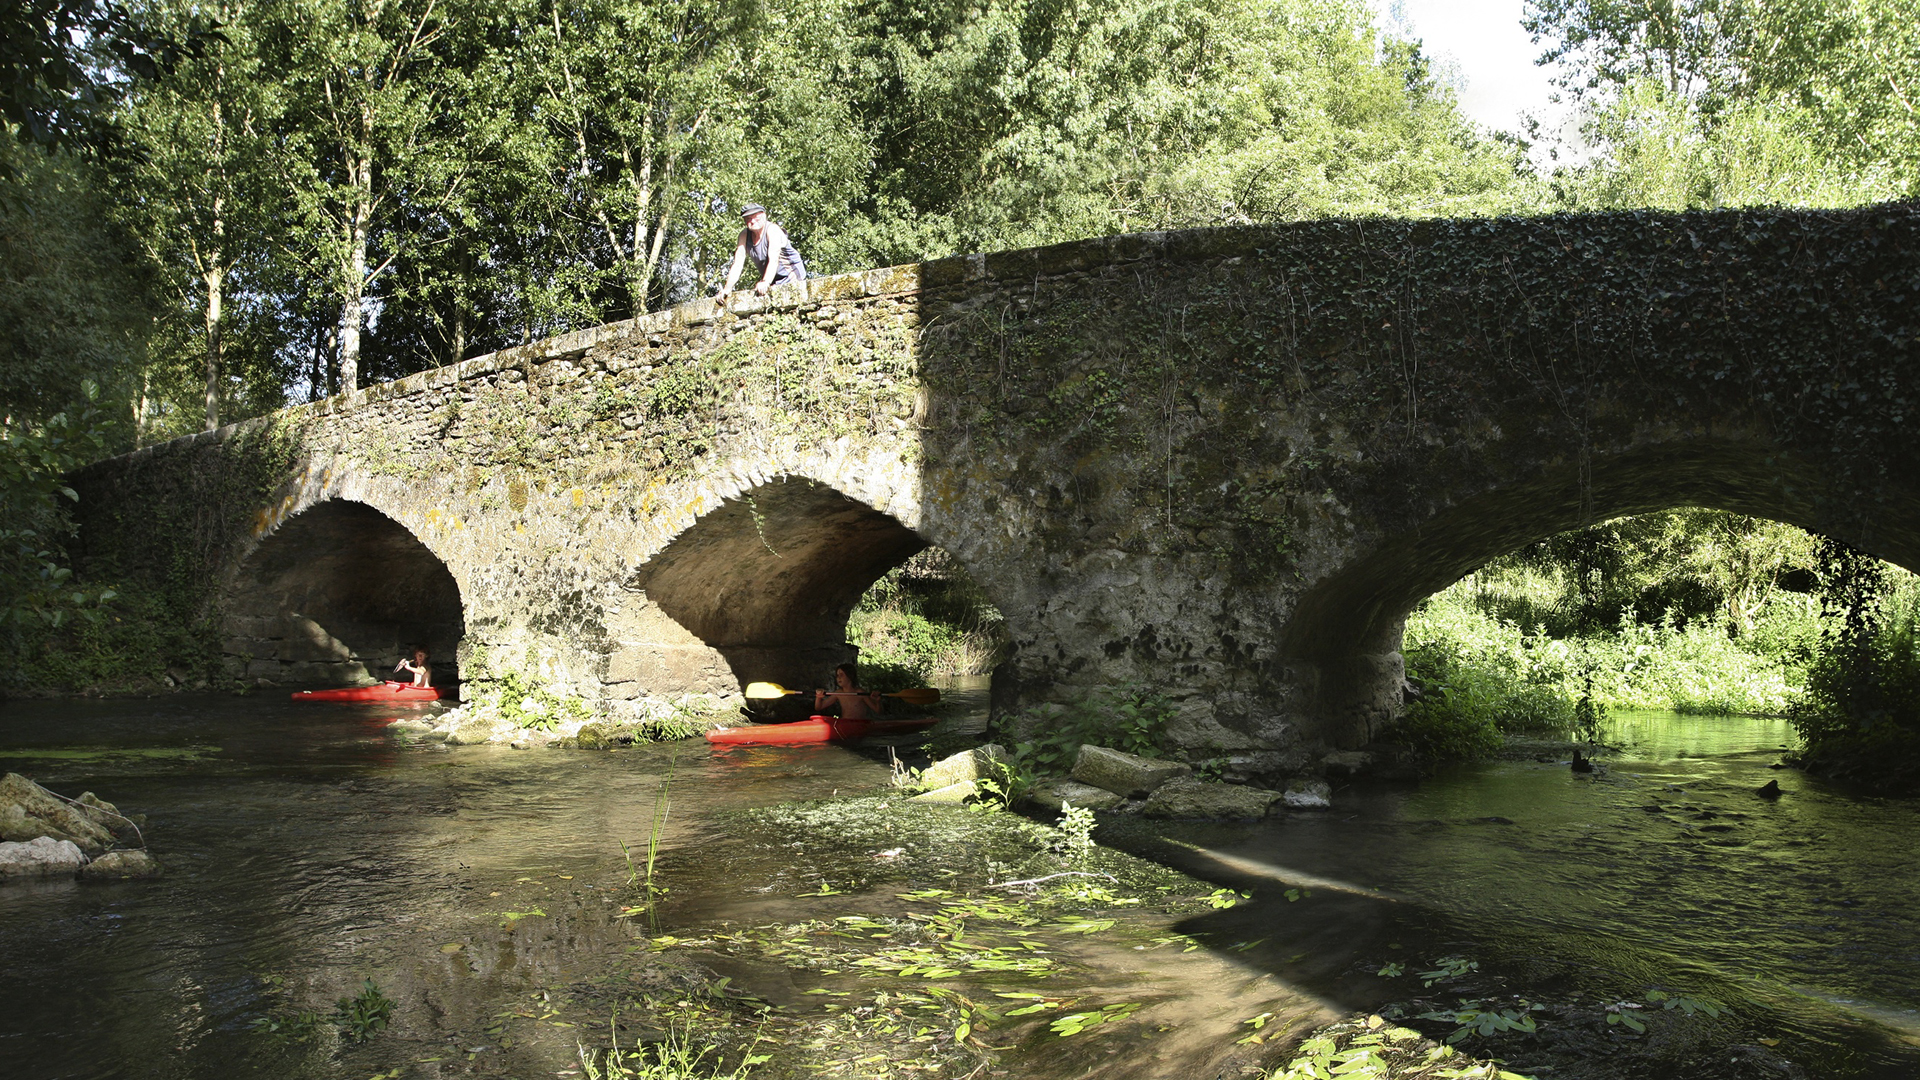 090924_ponts_ogival_du_moulin